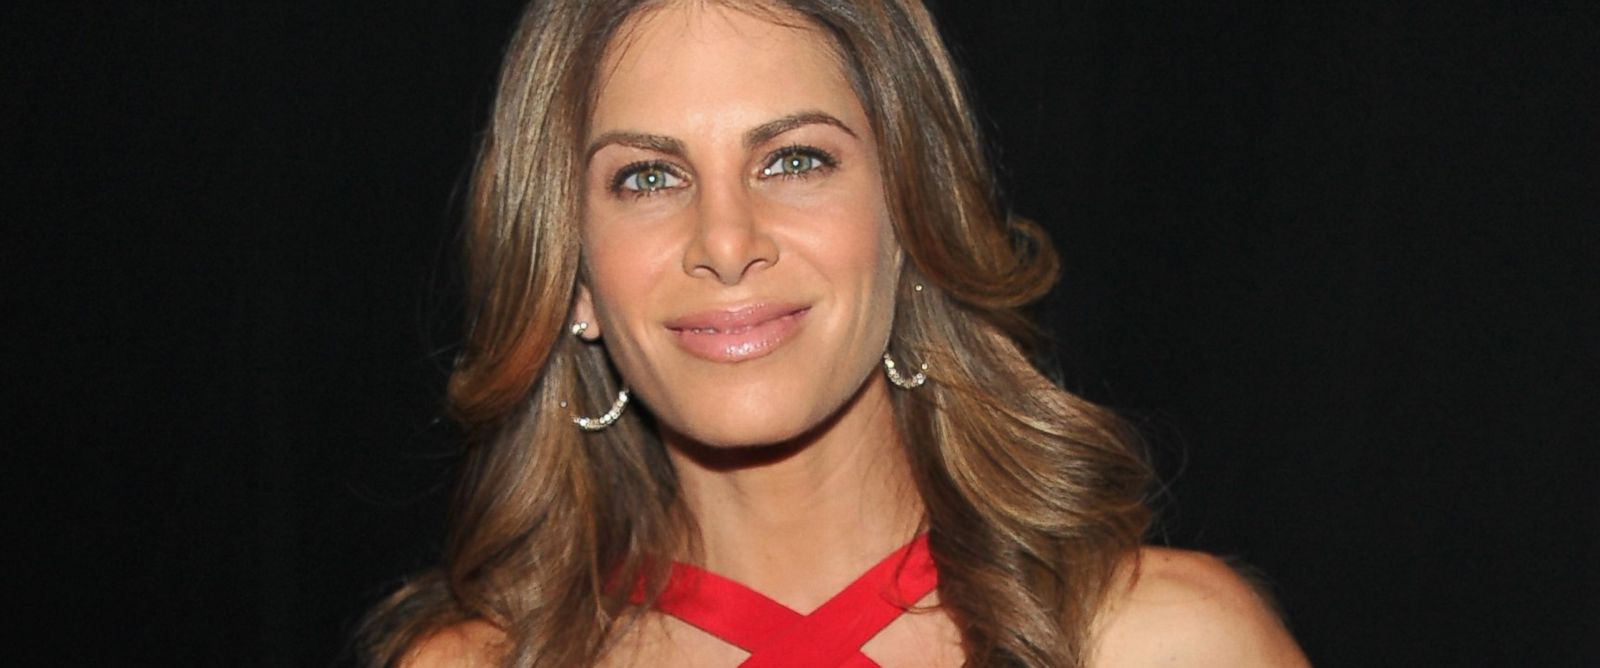 PHOTO: Jillian Michaels poses backstage at the Heart Truth 2013 Fashion Show at Hammerstein Ballroom in this Feb. 6, 2013, file photo in New York City.